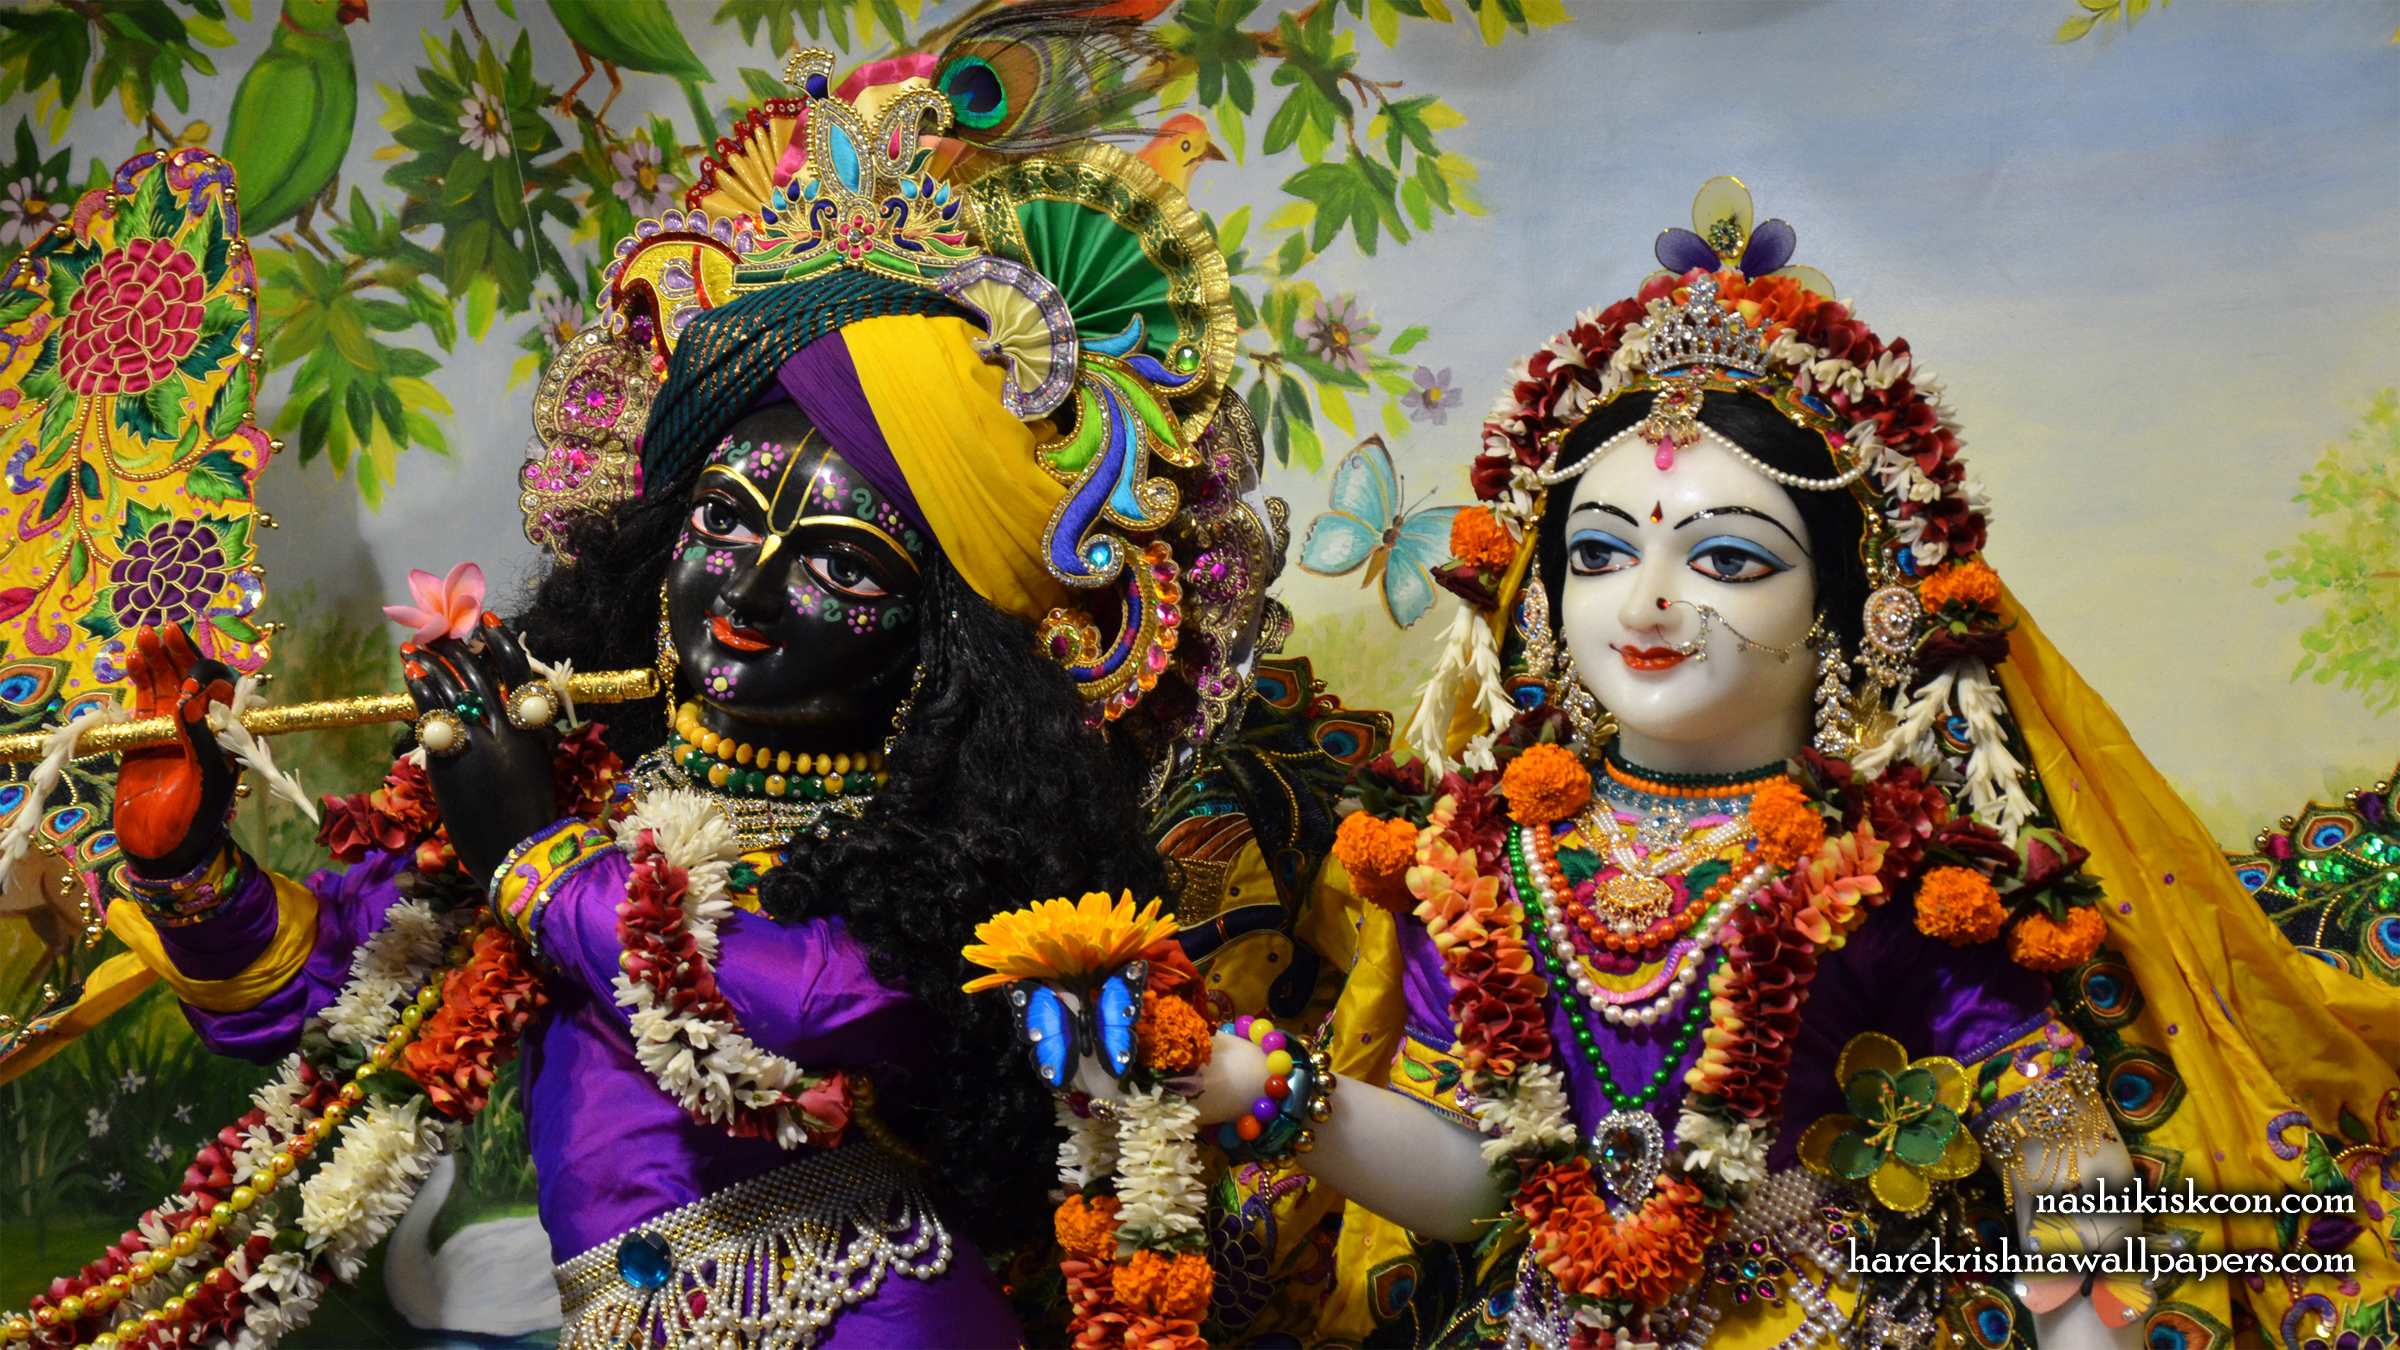 Sri Sri Radha Madan Gopal Close up Wallpaper (006) Size 2400x1350 Download